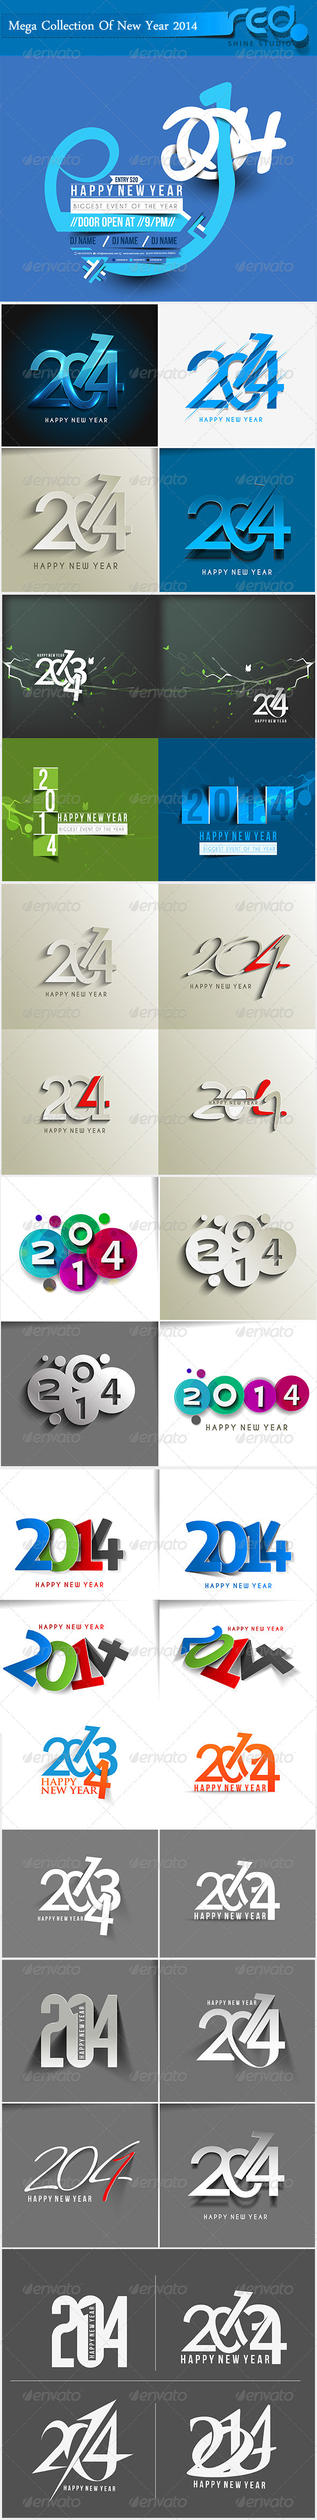 Happy New Year 2014 Background by Redshinestudio